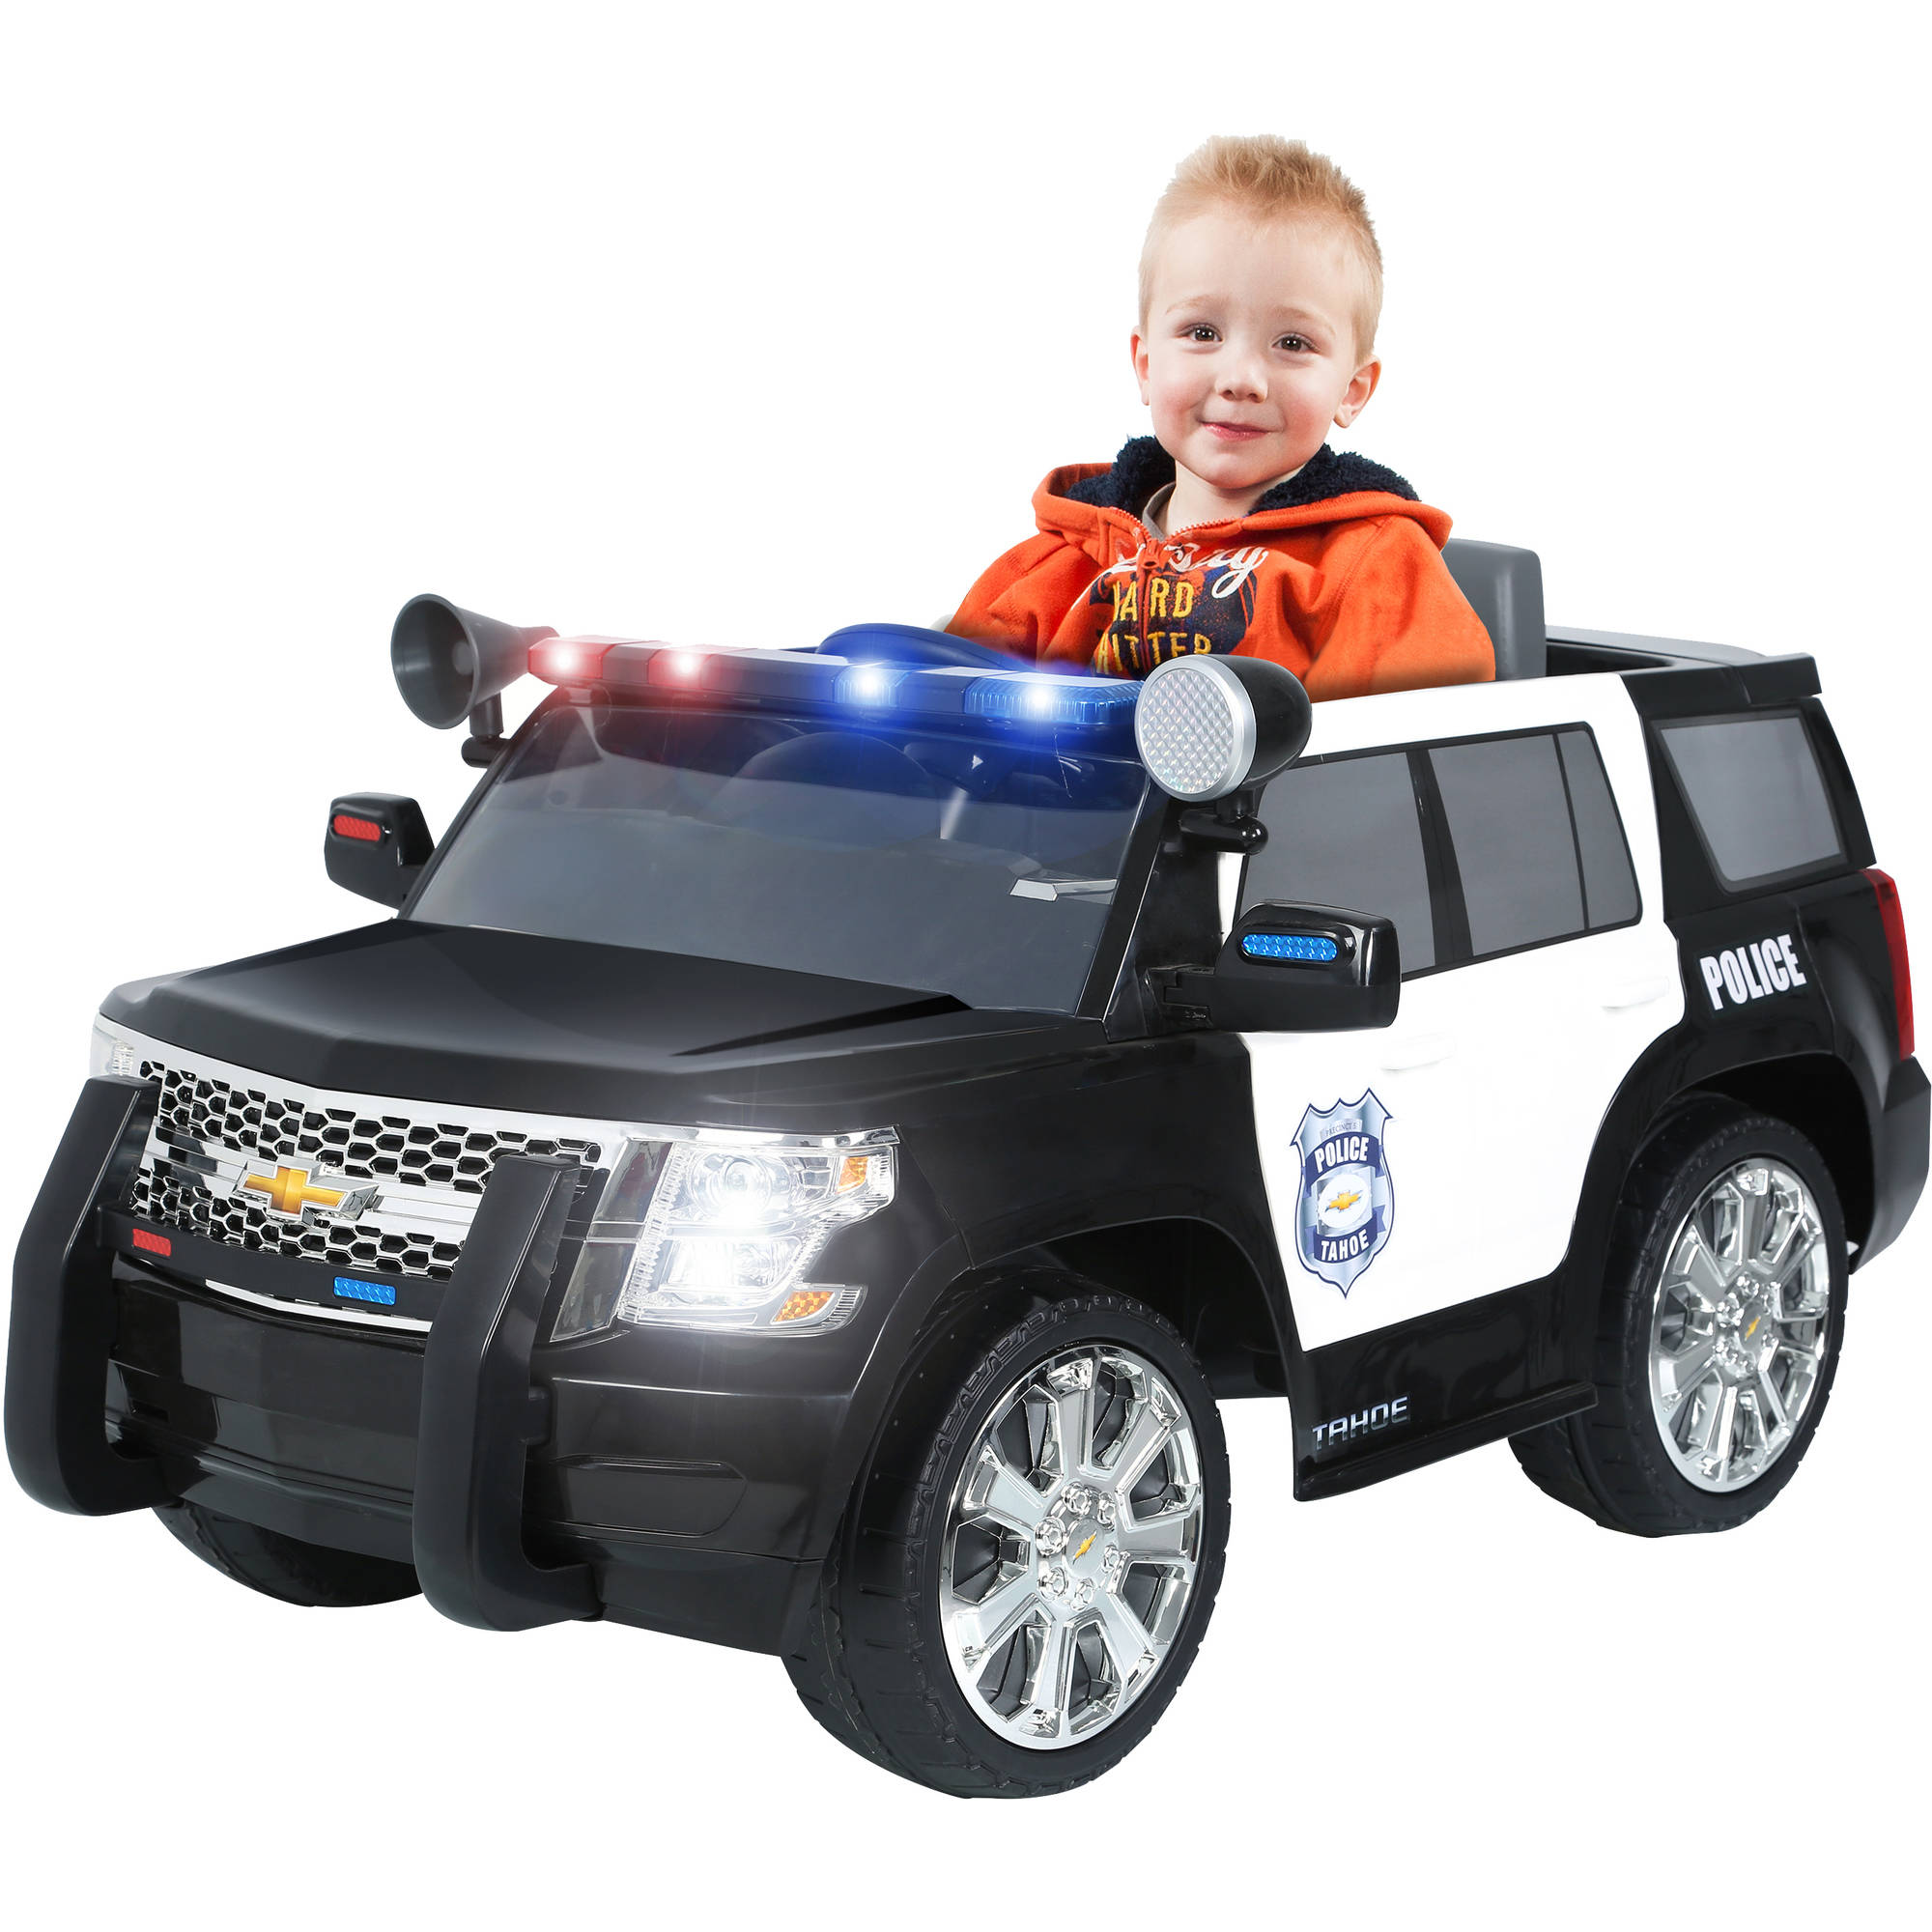 Electric cars for kids to ride on chevy tahoe police suv 6 for Motorized vehicles for kids